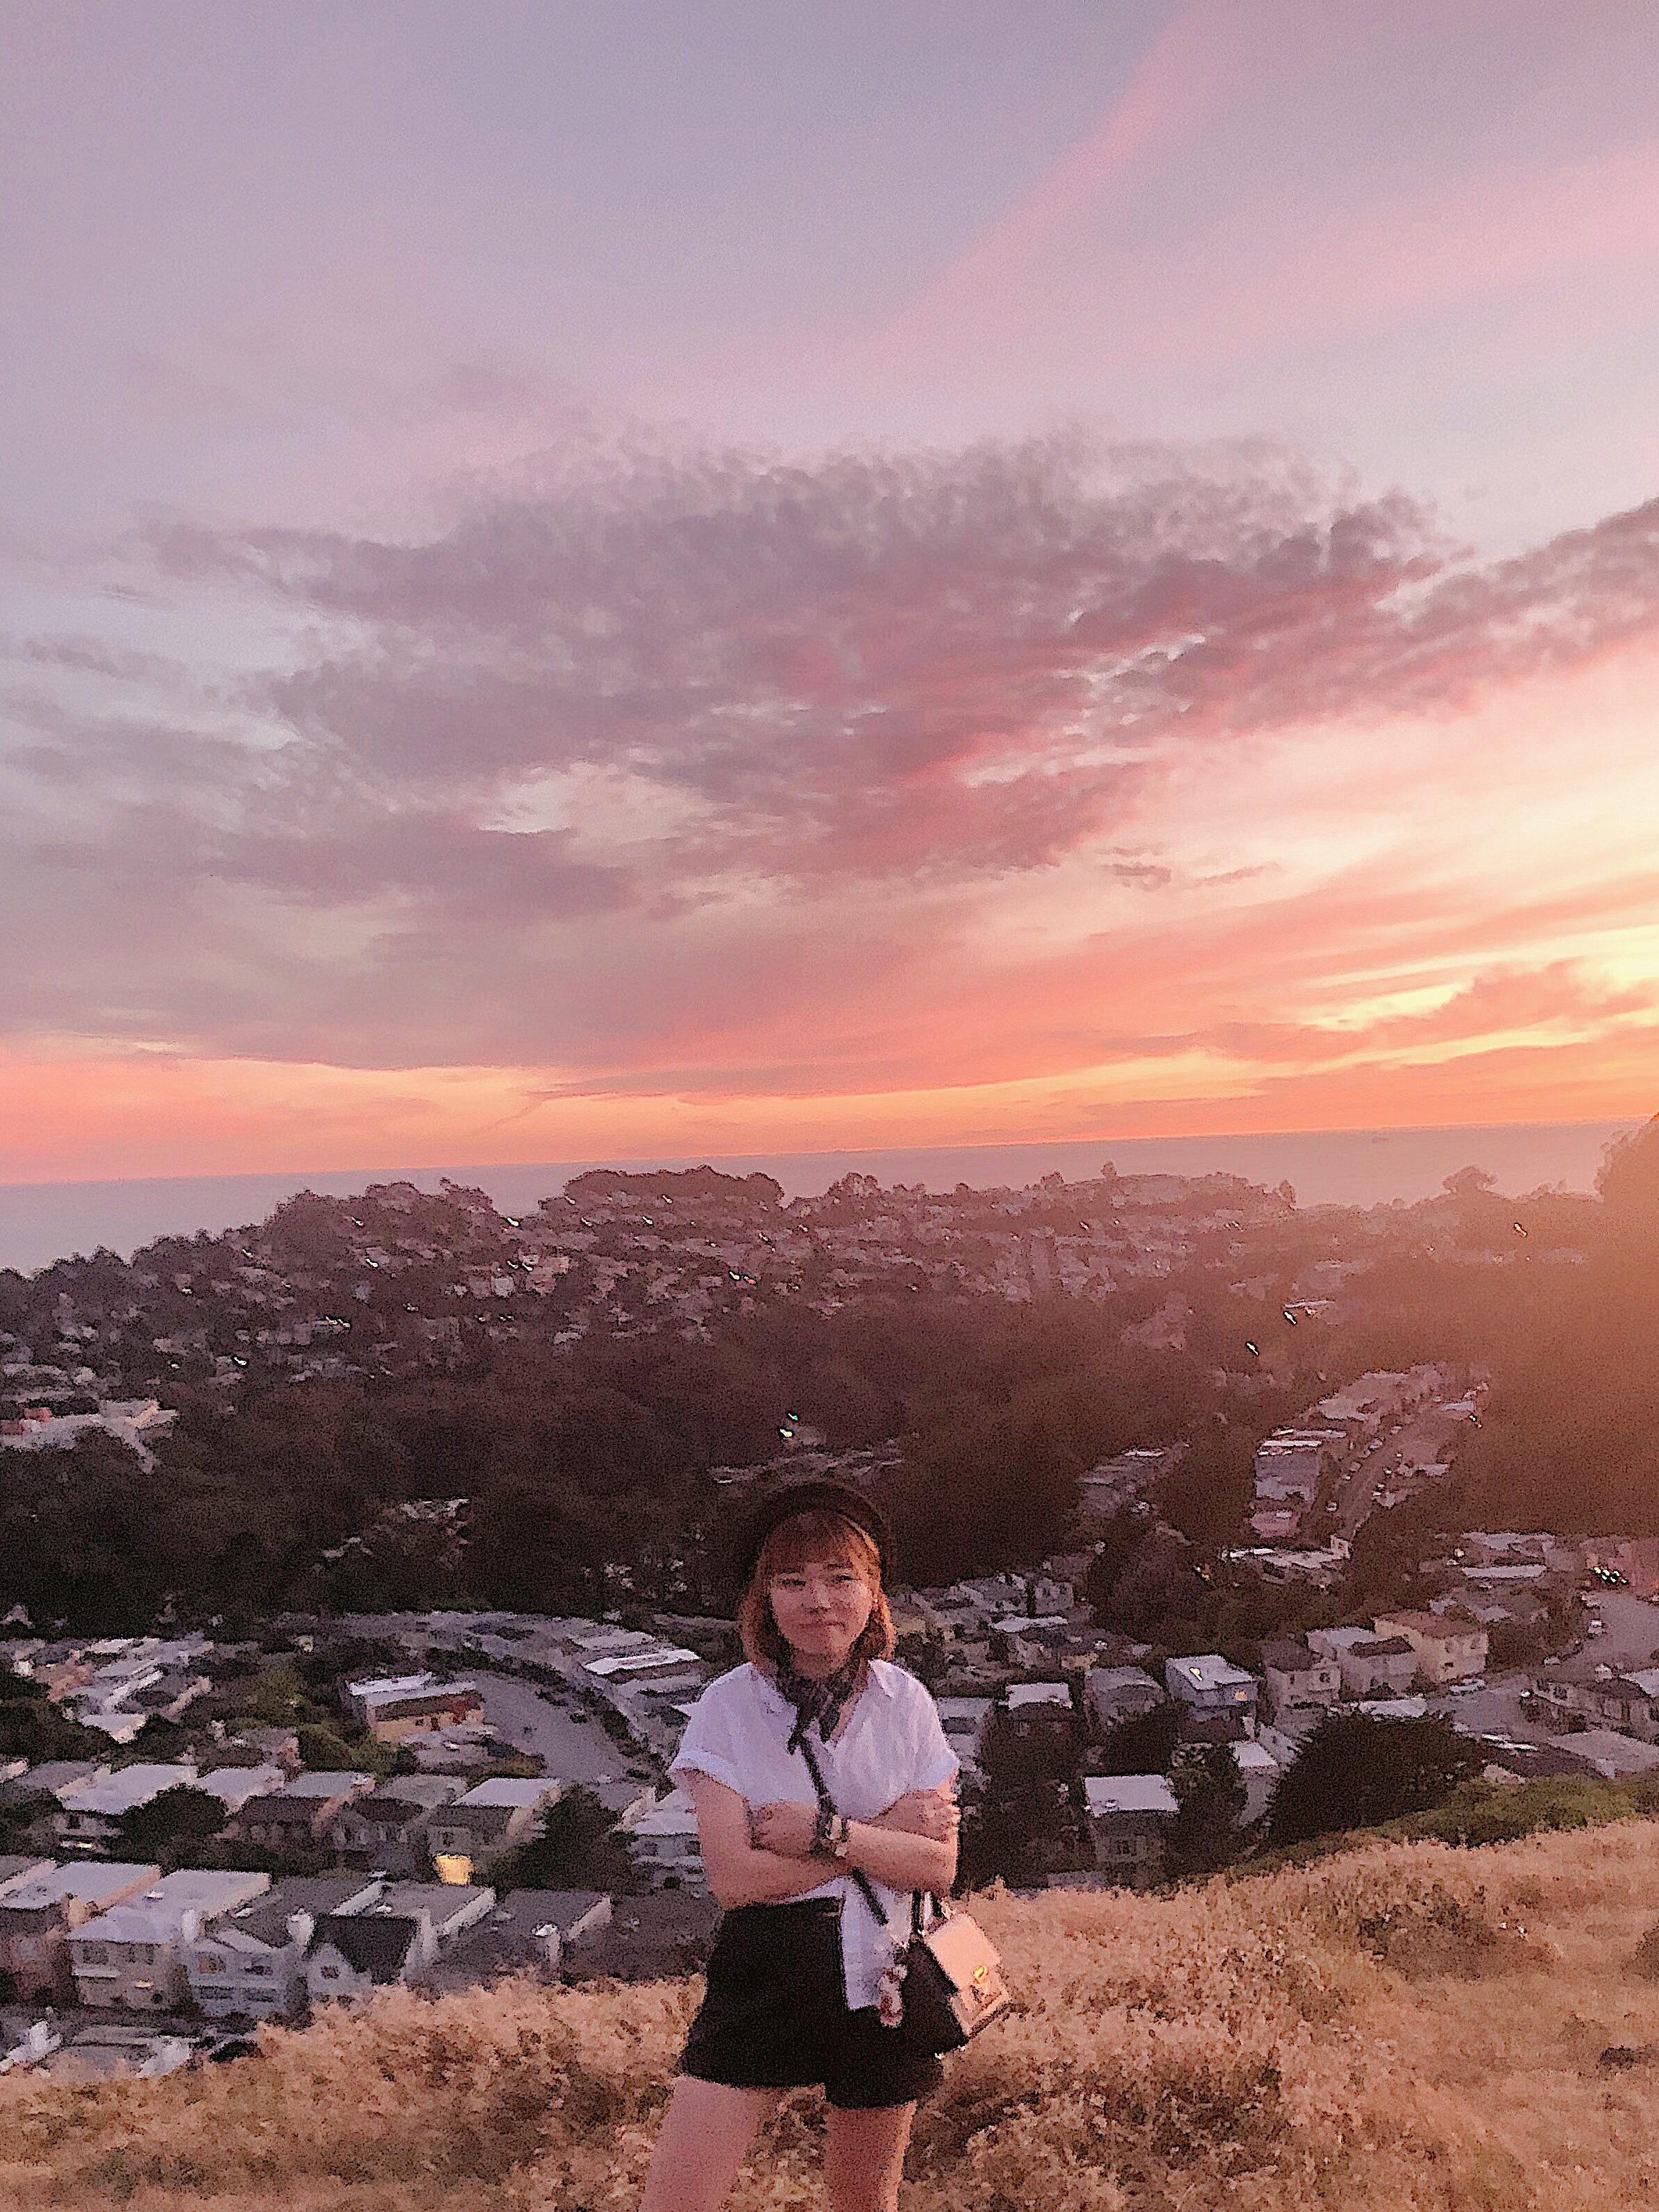 syl + sunset.JPG